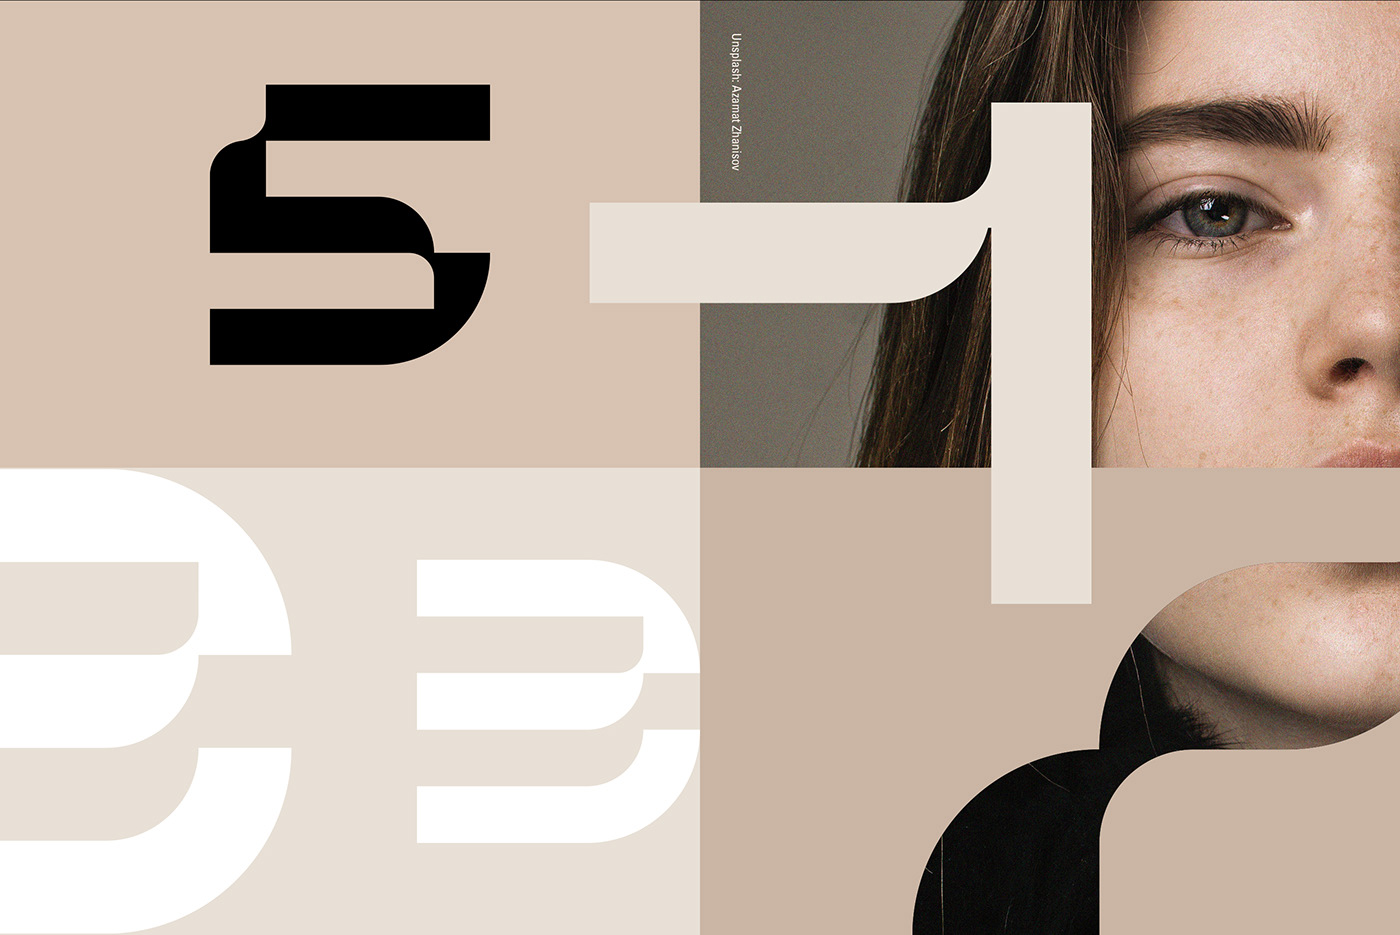 design,type,numbers,weird,Numerals,clean,minimal,Behance,discover,lettering